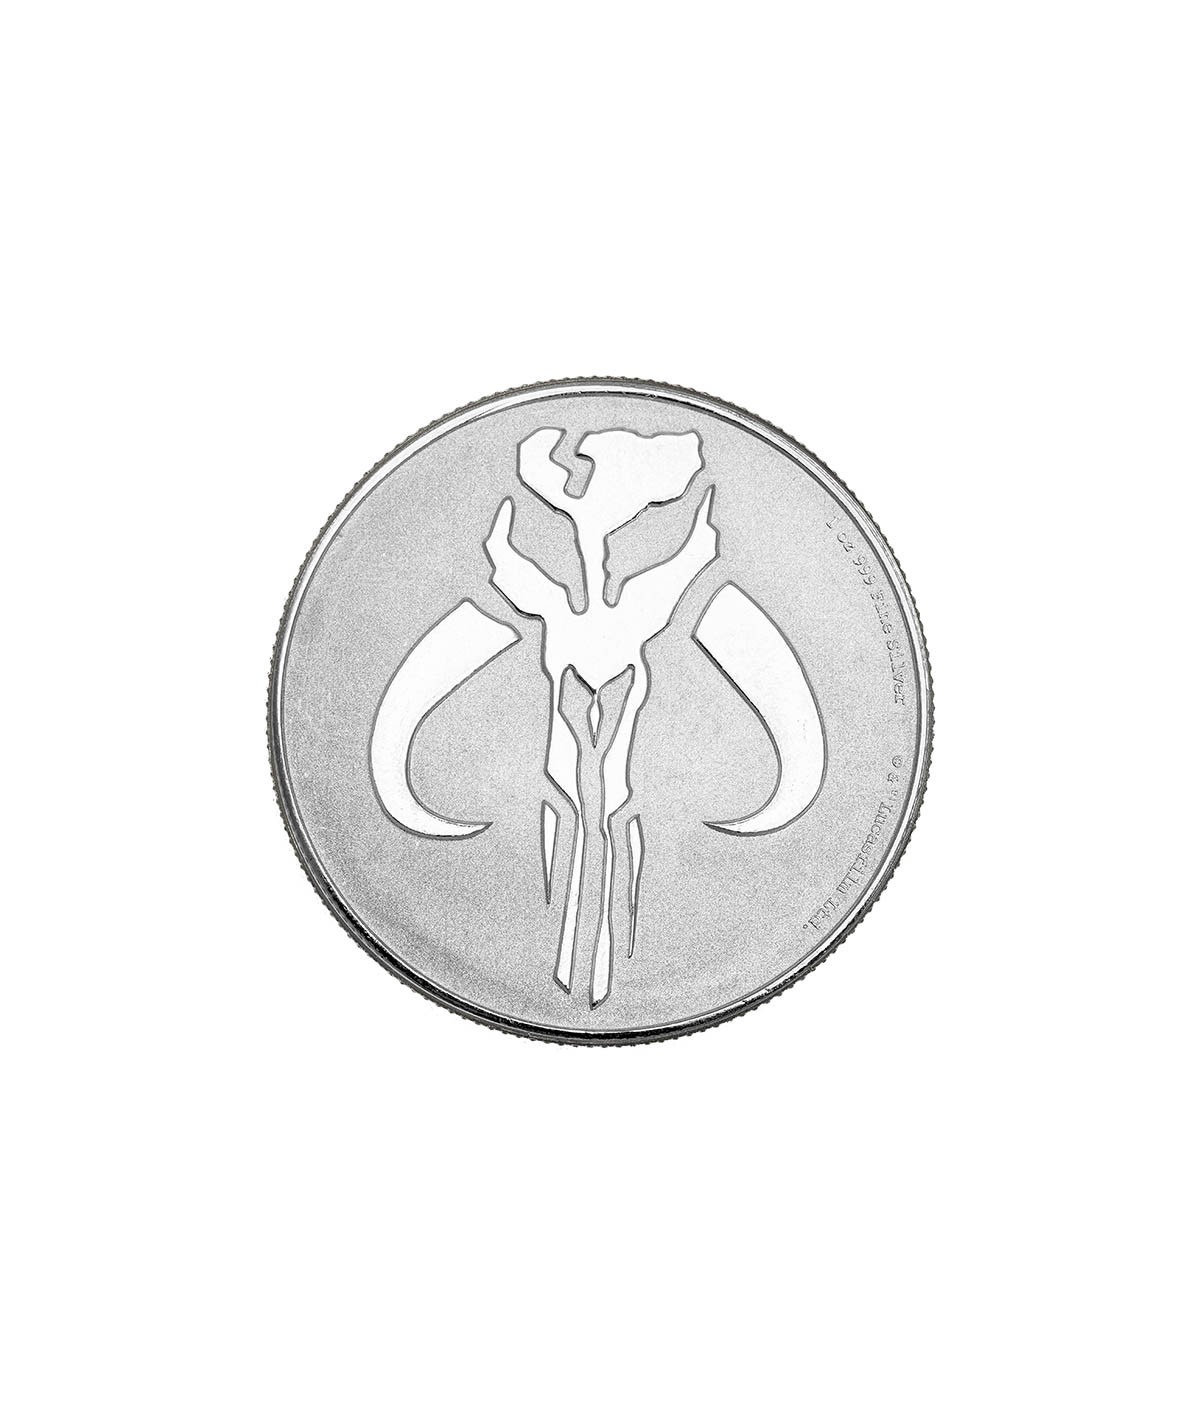 1oz Silver Coin Mandalorian Mythosaur from 2020 - Star Wars serie